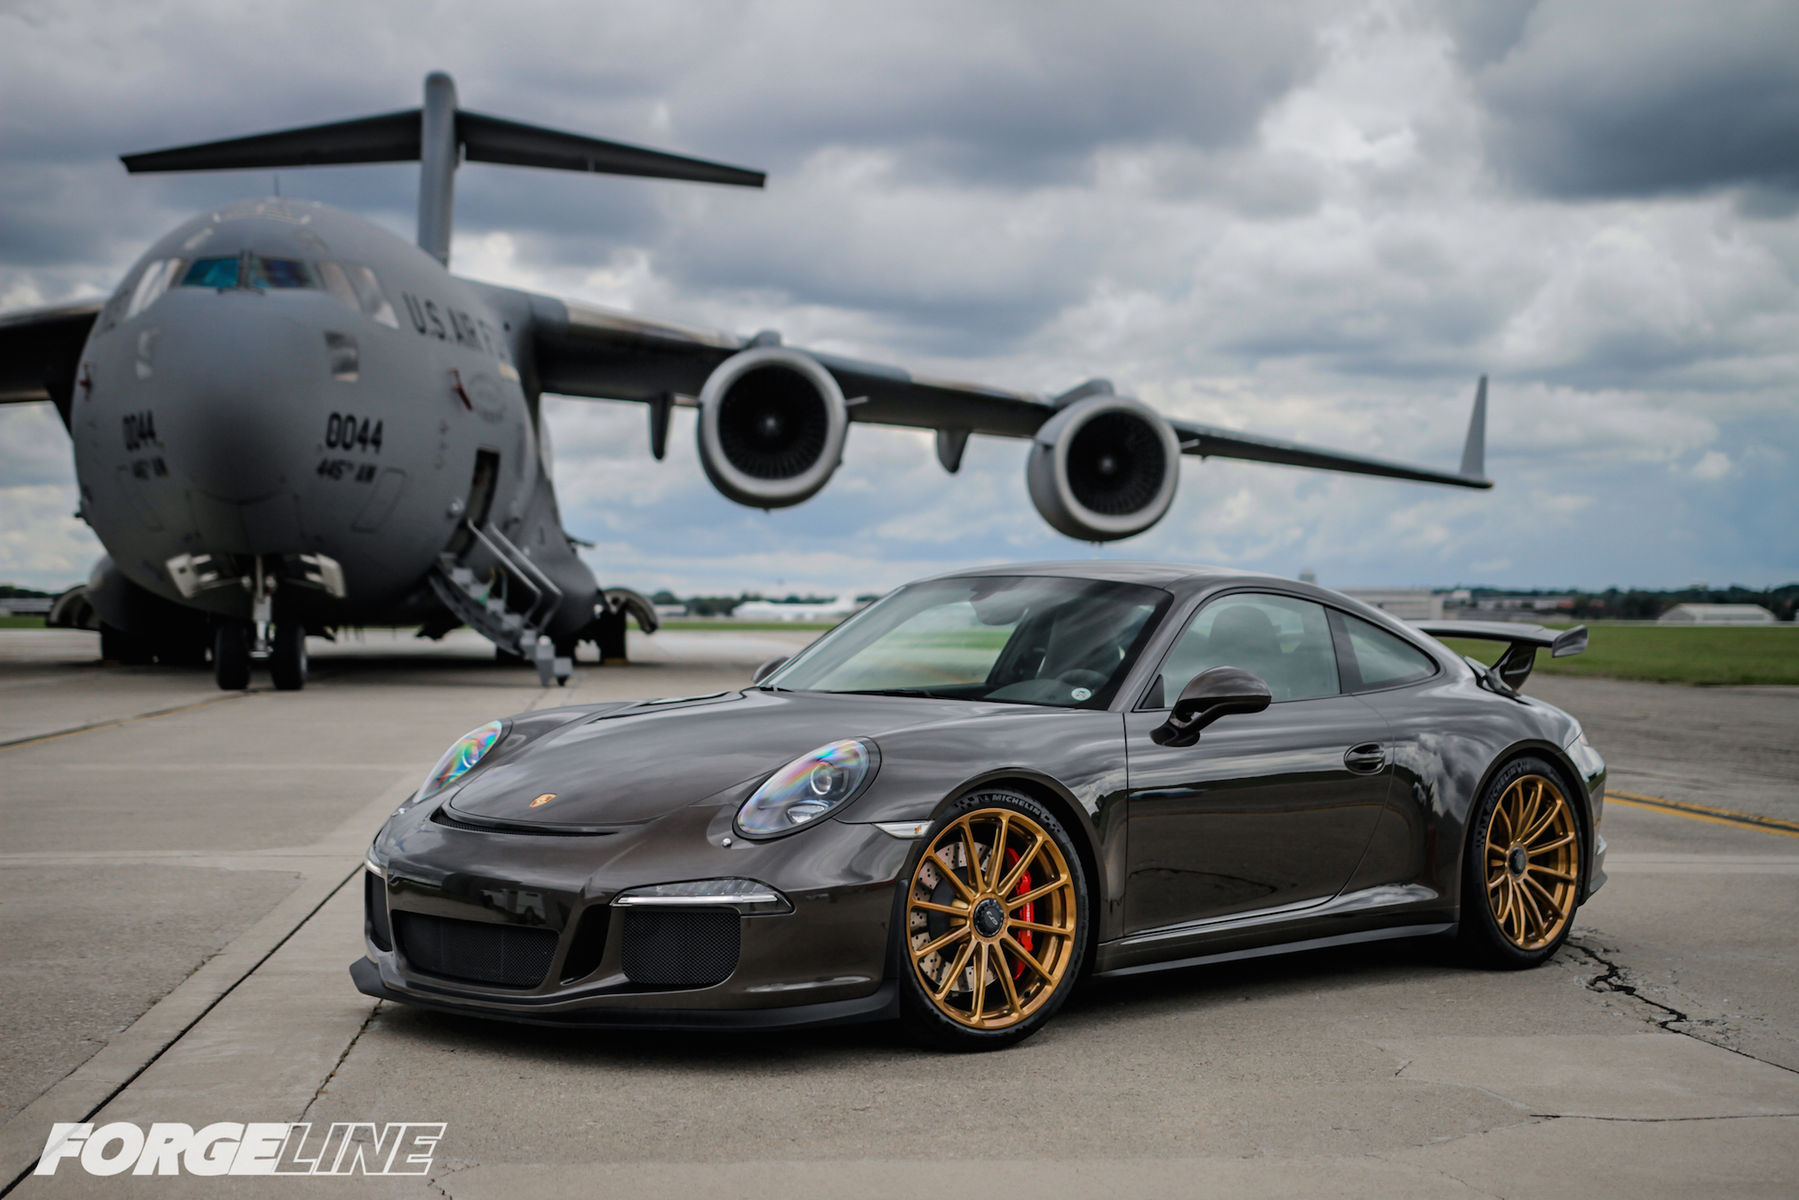 2015 Porsche 911 | Jim Schardt's Porsche 991 GT3 on Forgeline One PIece Forged Monoblock GT1 Wheels